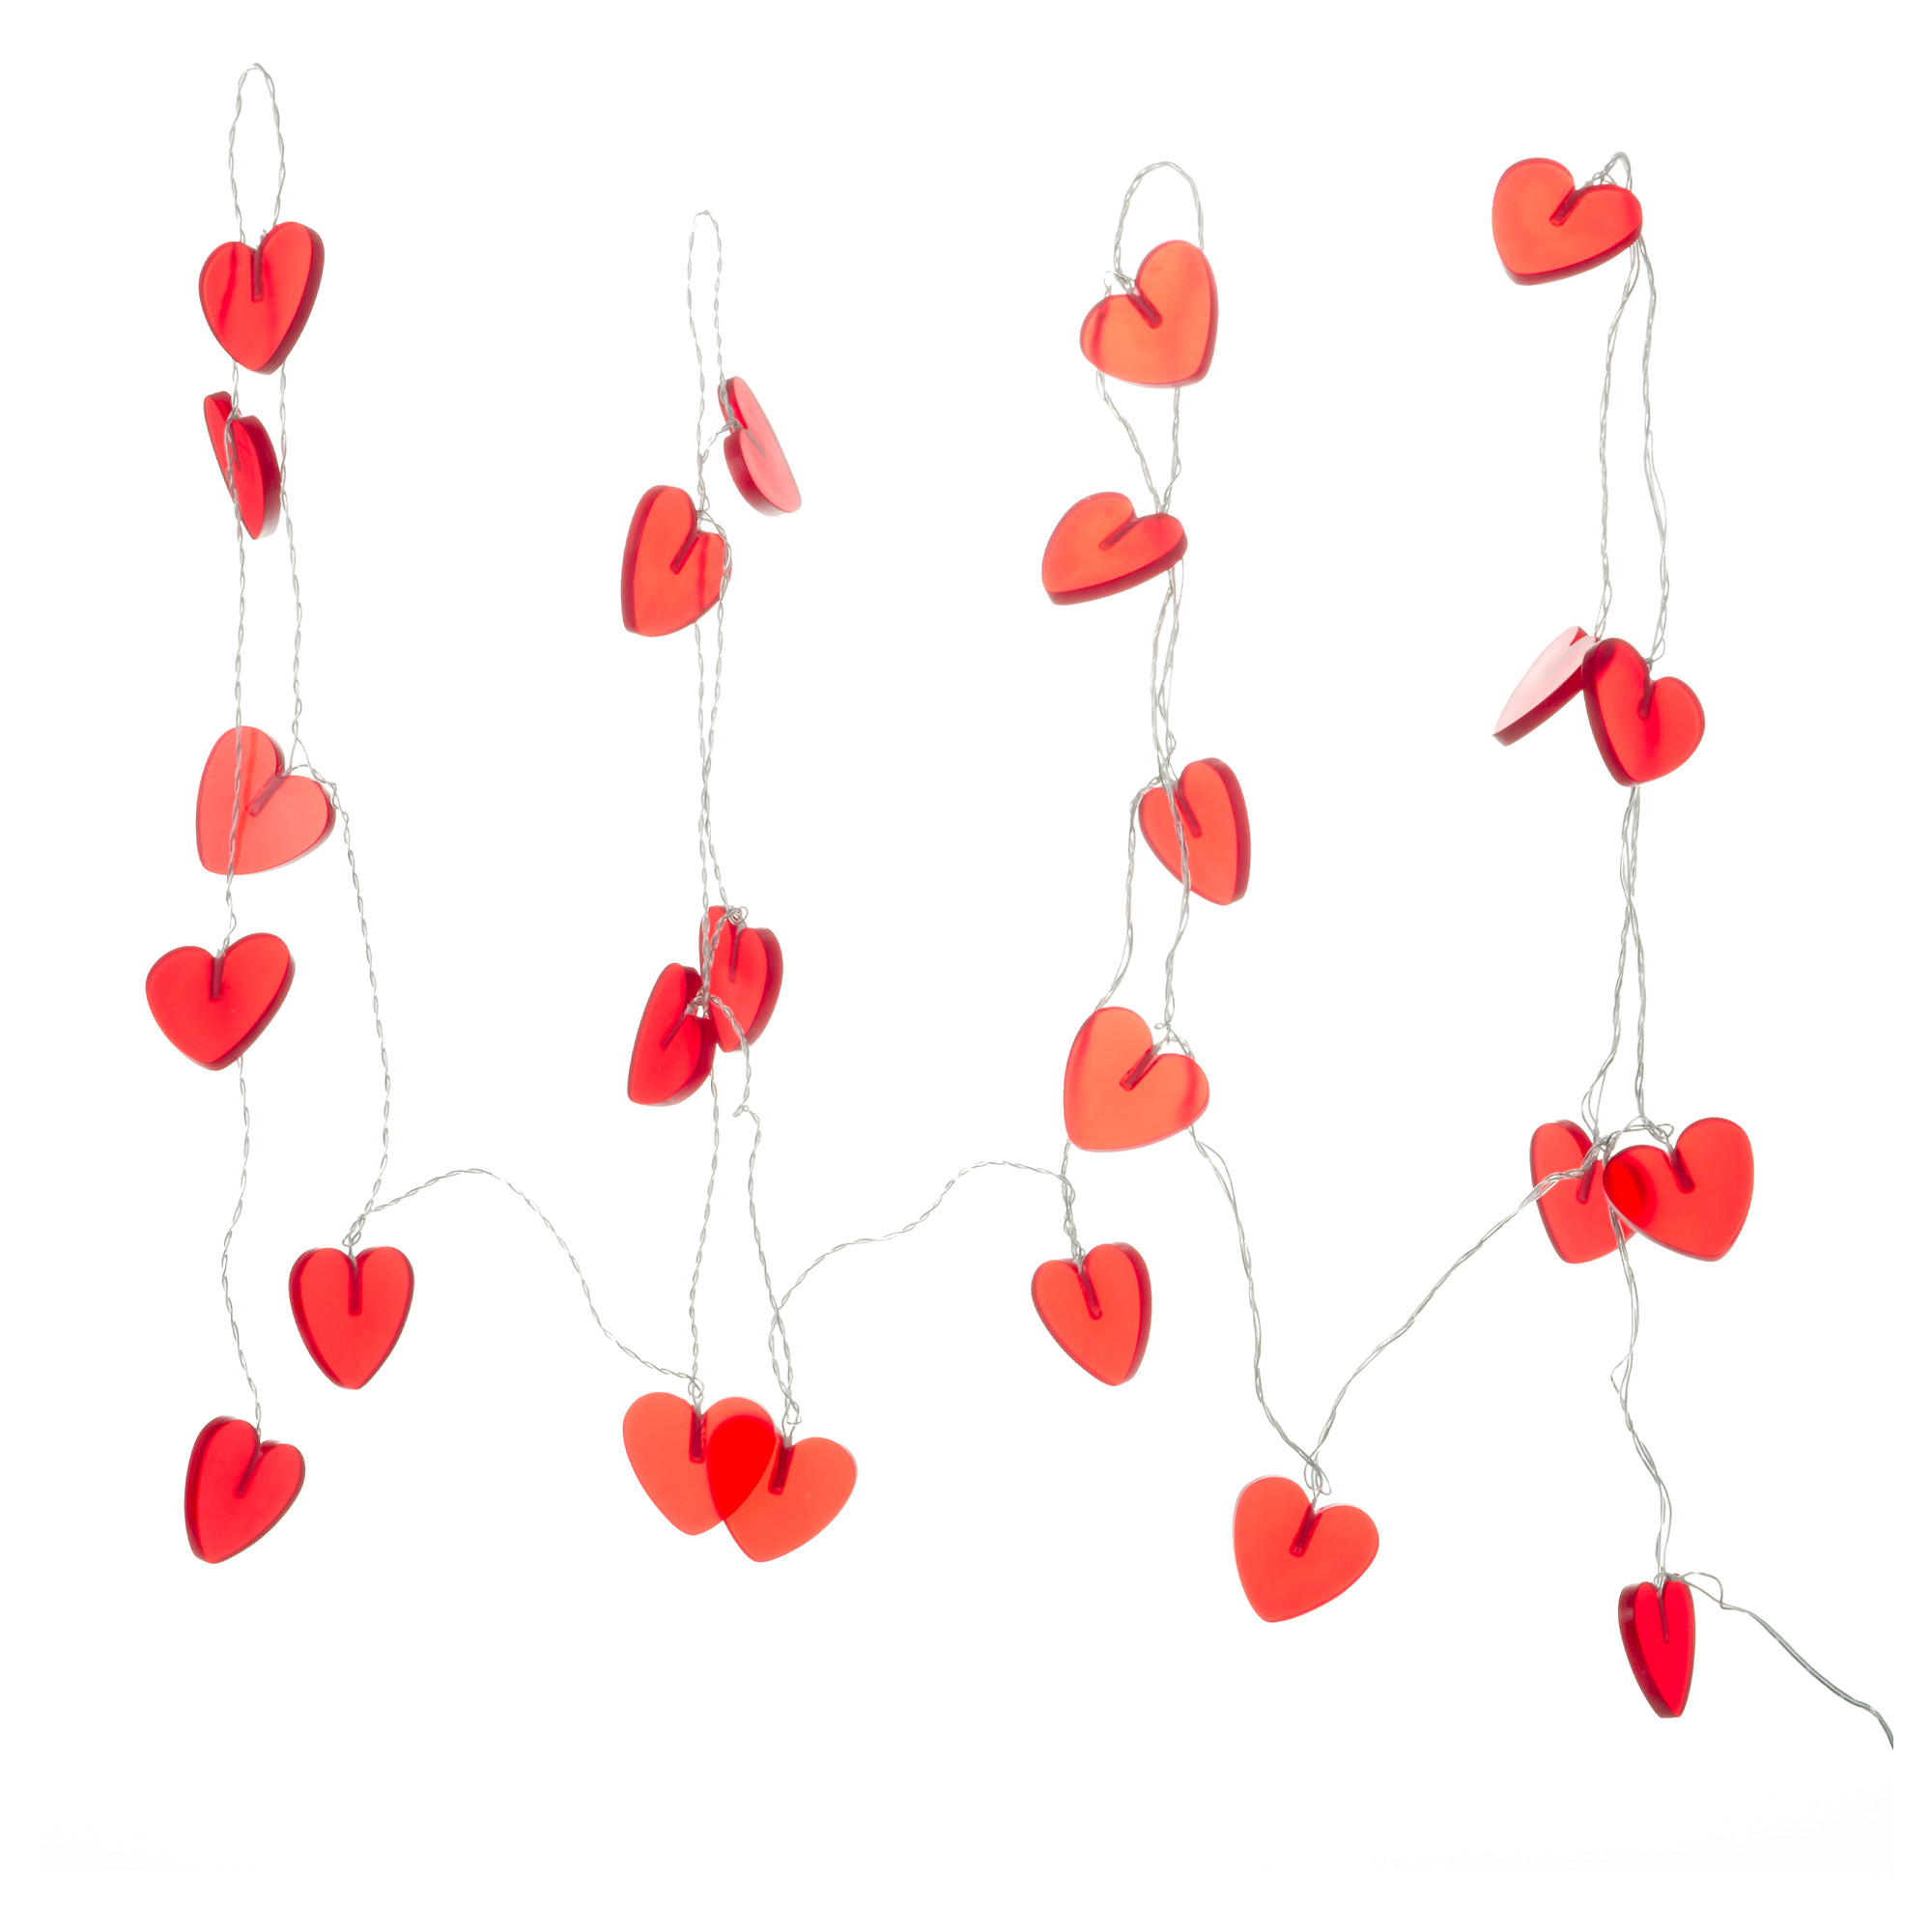 Ikea Ramsta 24 Large Red Heart Shaped String Lights